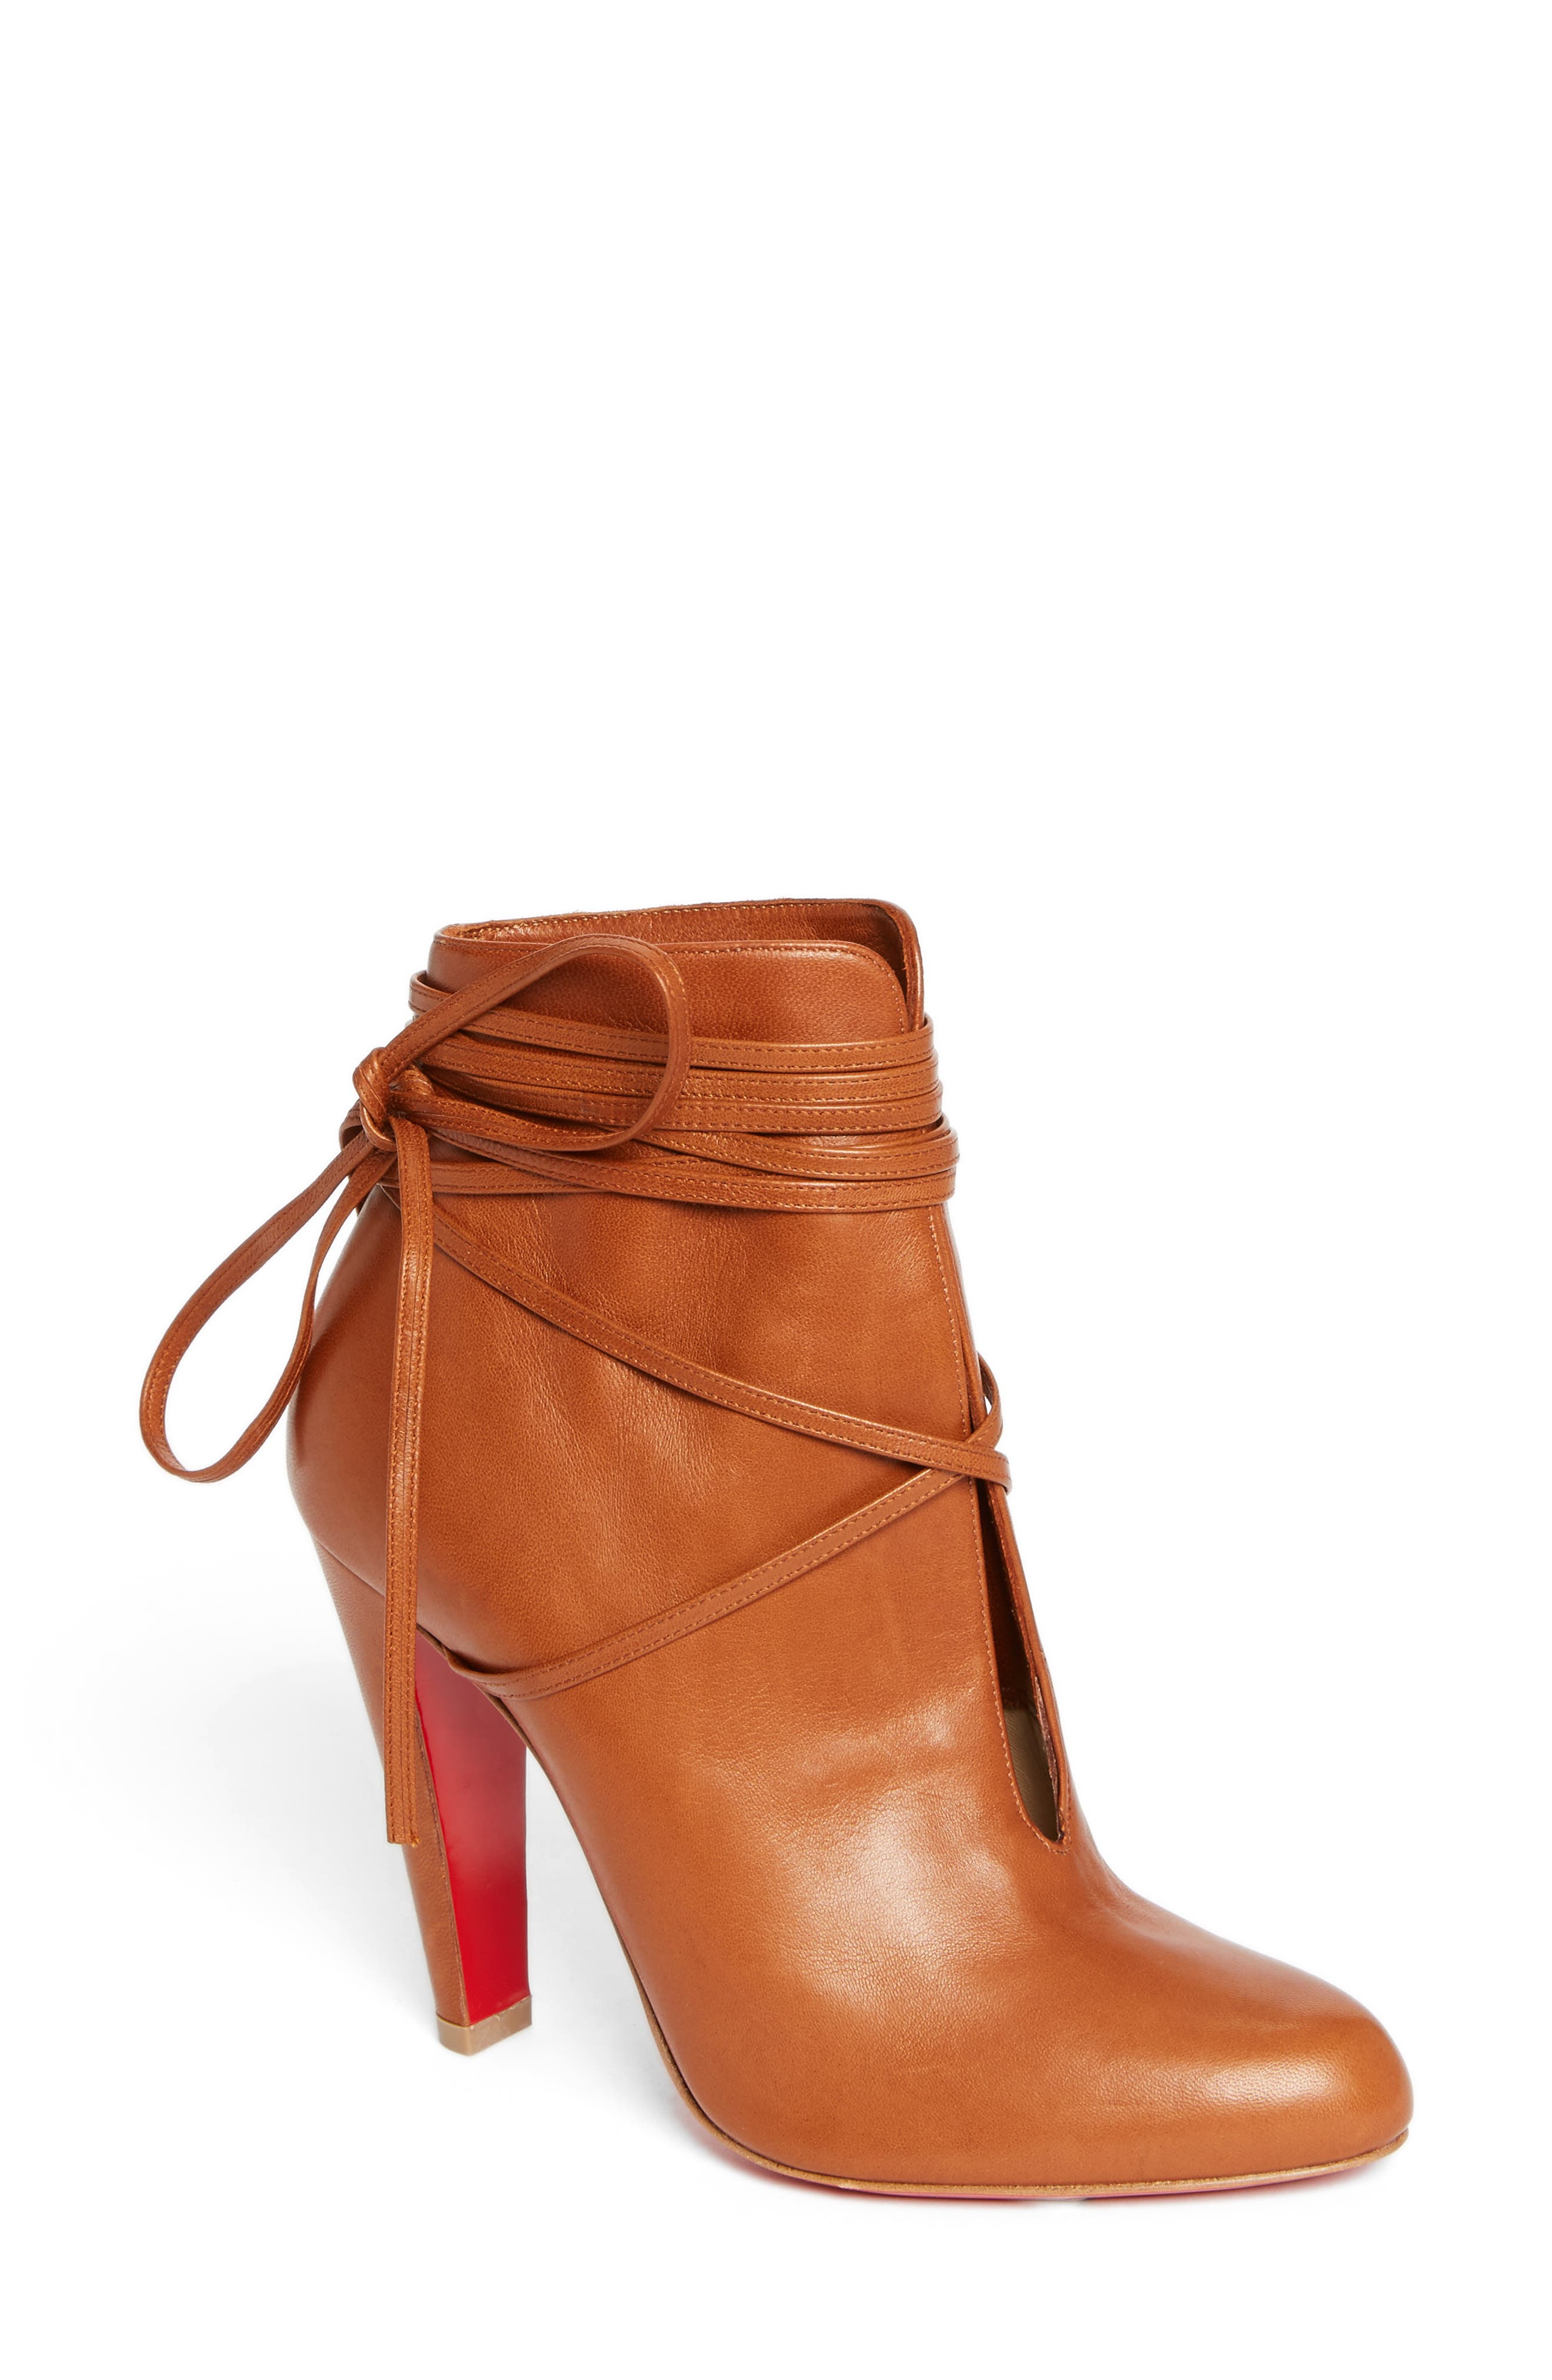 CHRISTIAN LOUBOUTIN Ankle Tie Bootie